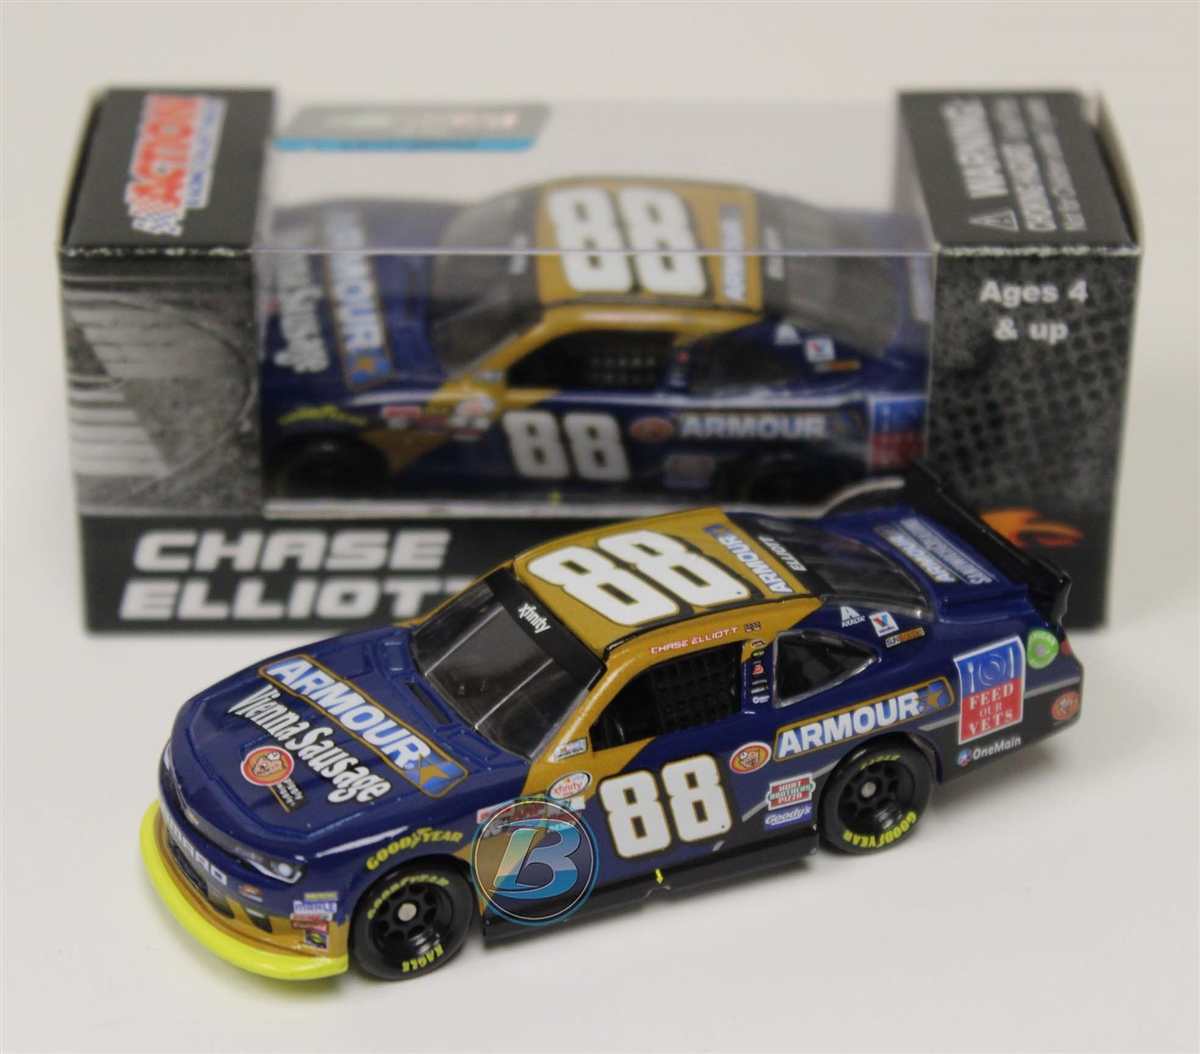 Chase Elliott 2016 Armour Foods 1:64 Nascar Diecast by Lionel Racing